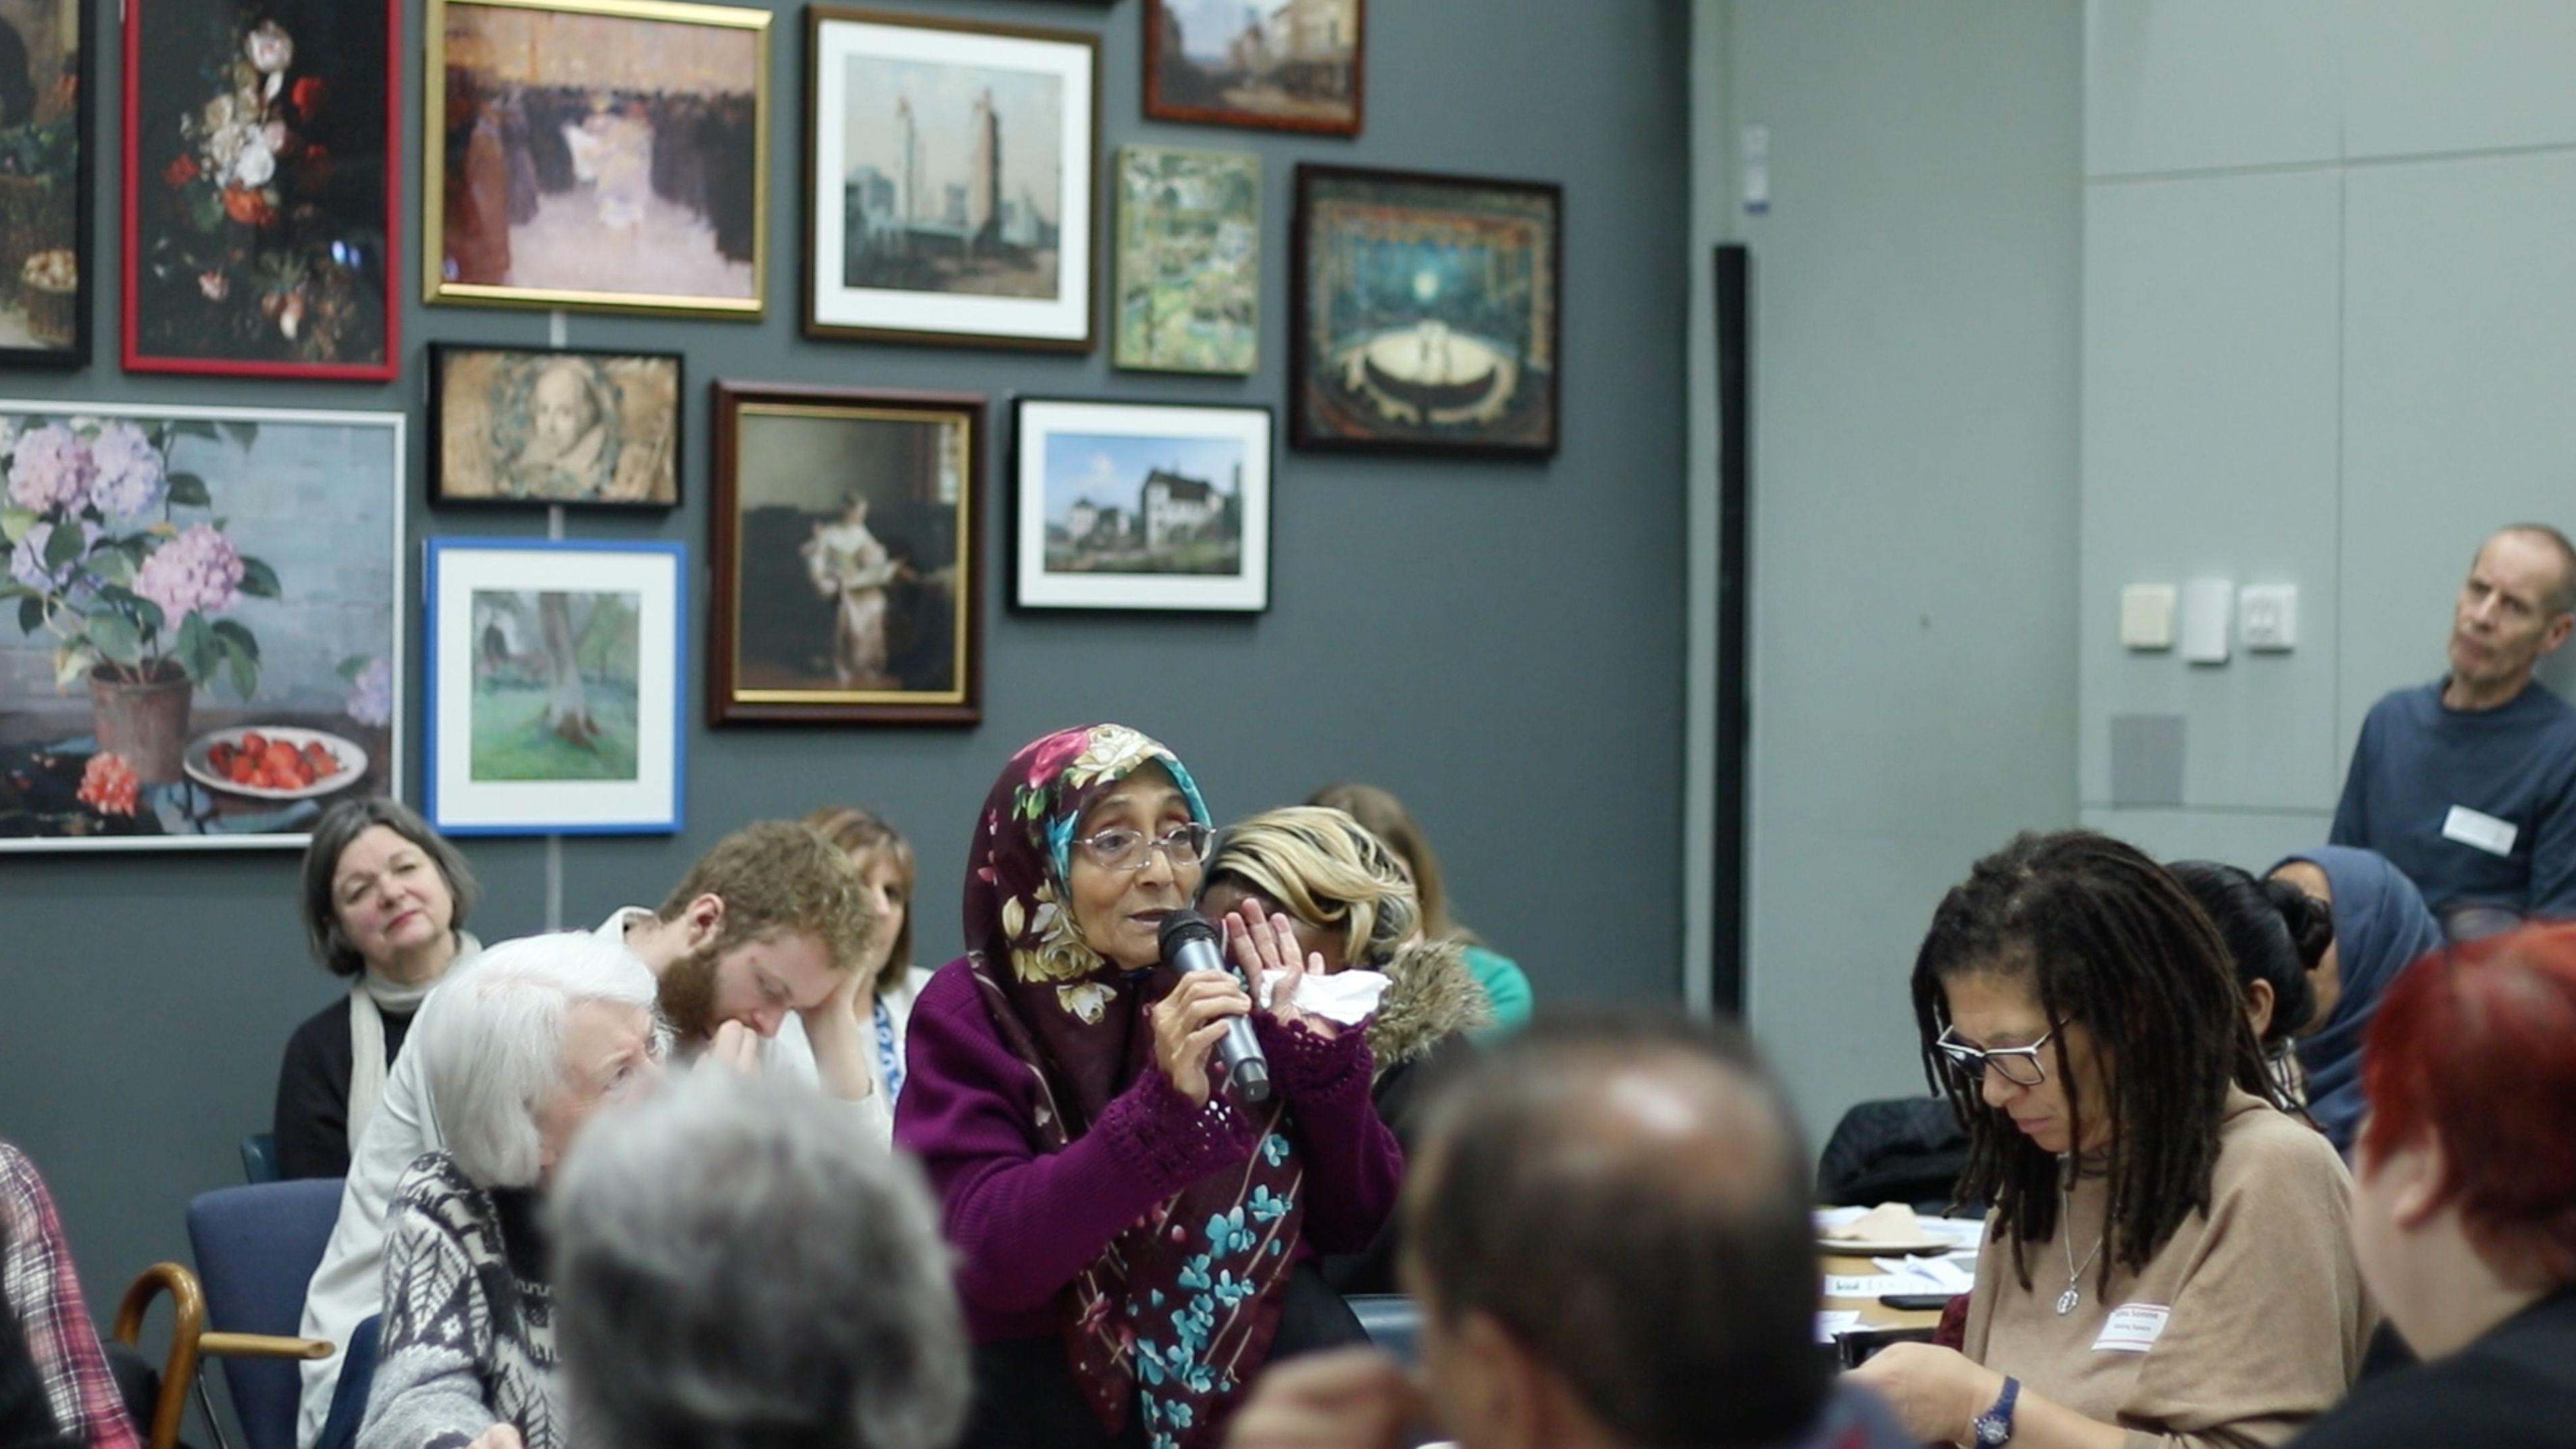 older Asian woman speaking with microphone at event paintings on wall behind